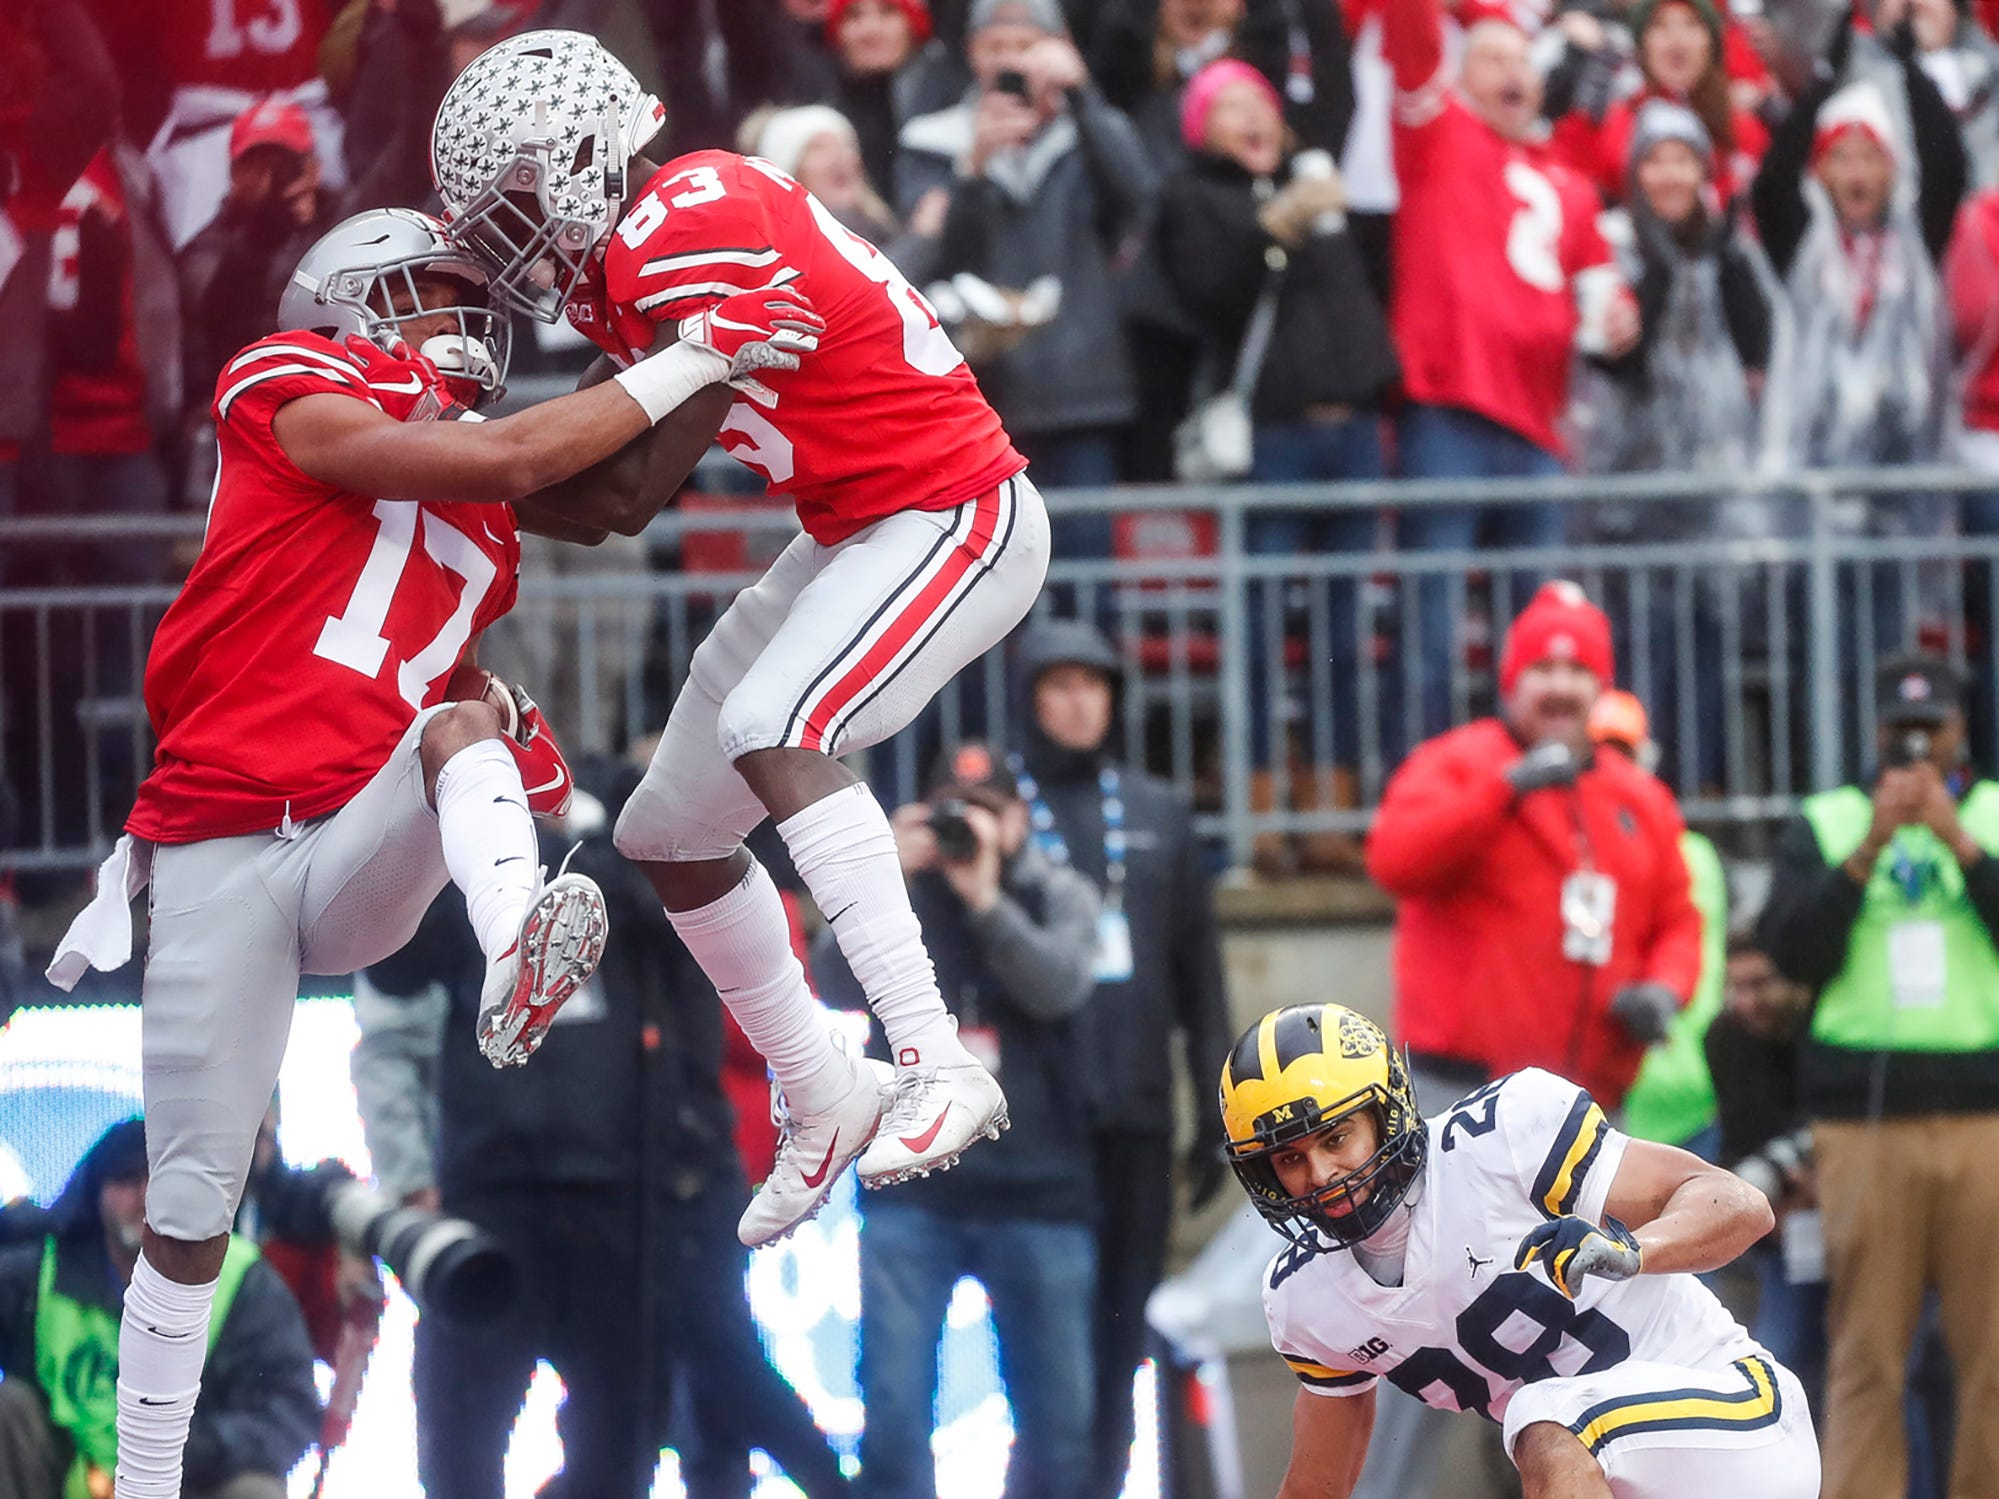 Ohio State has creativity and surprise, what Michigan football lacks